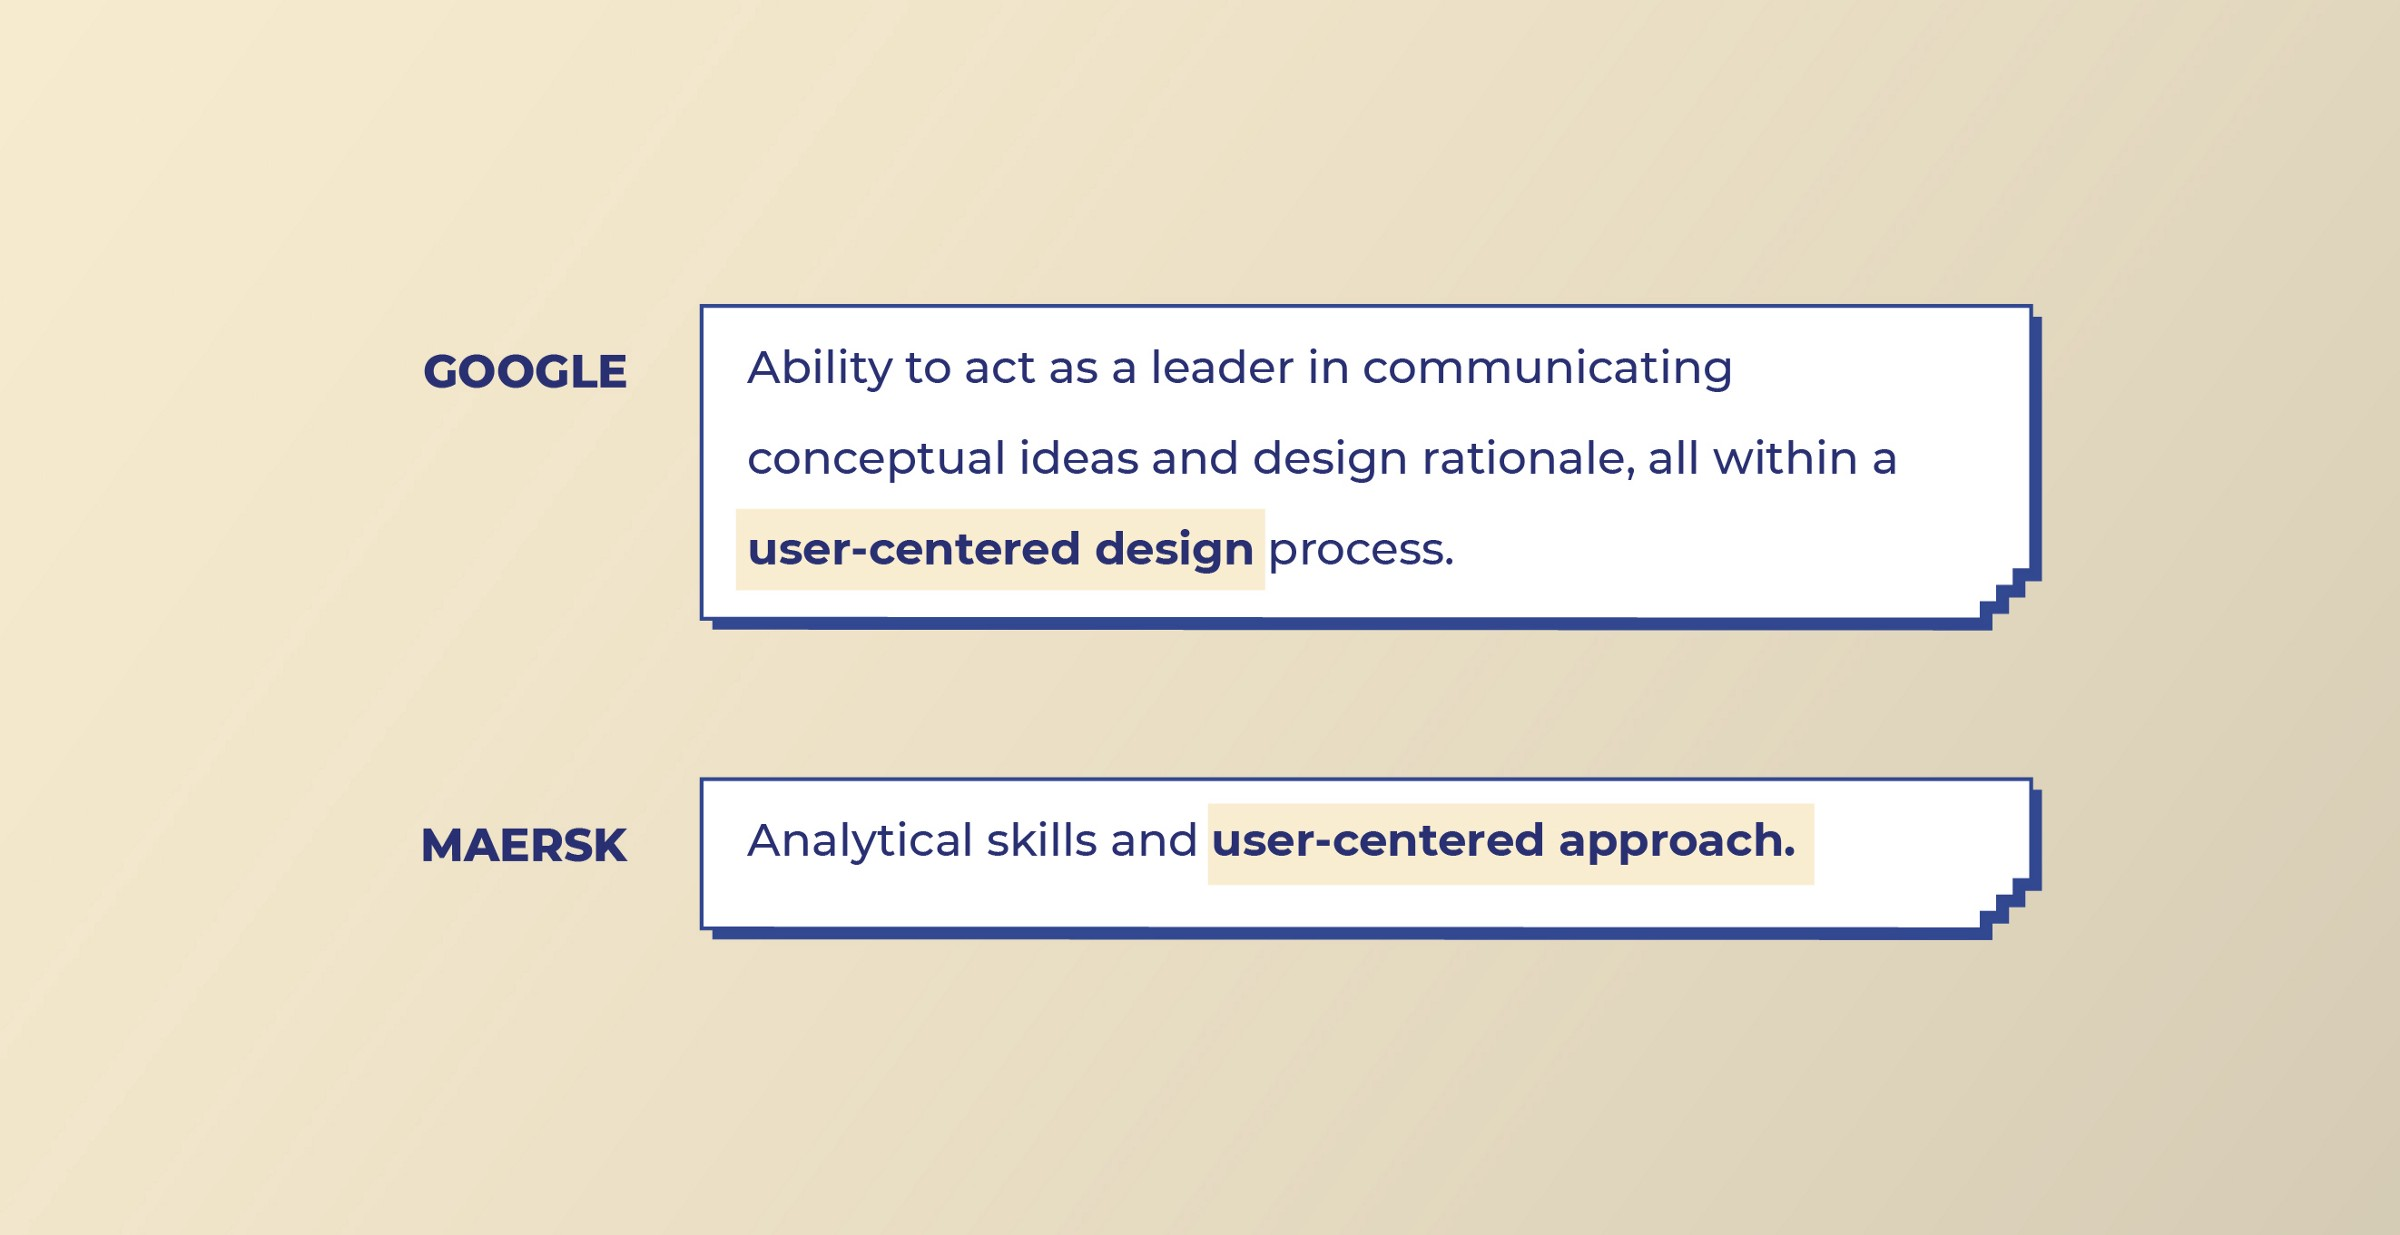 Google and Maers look for User-centered design skills from Visual designers